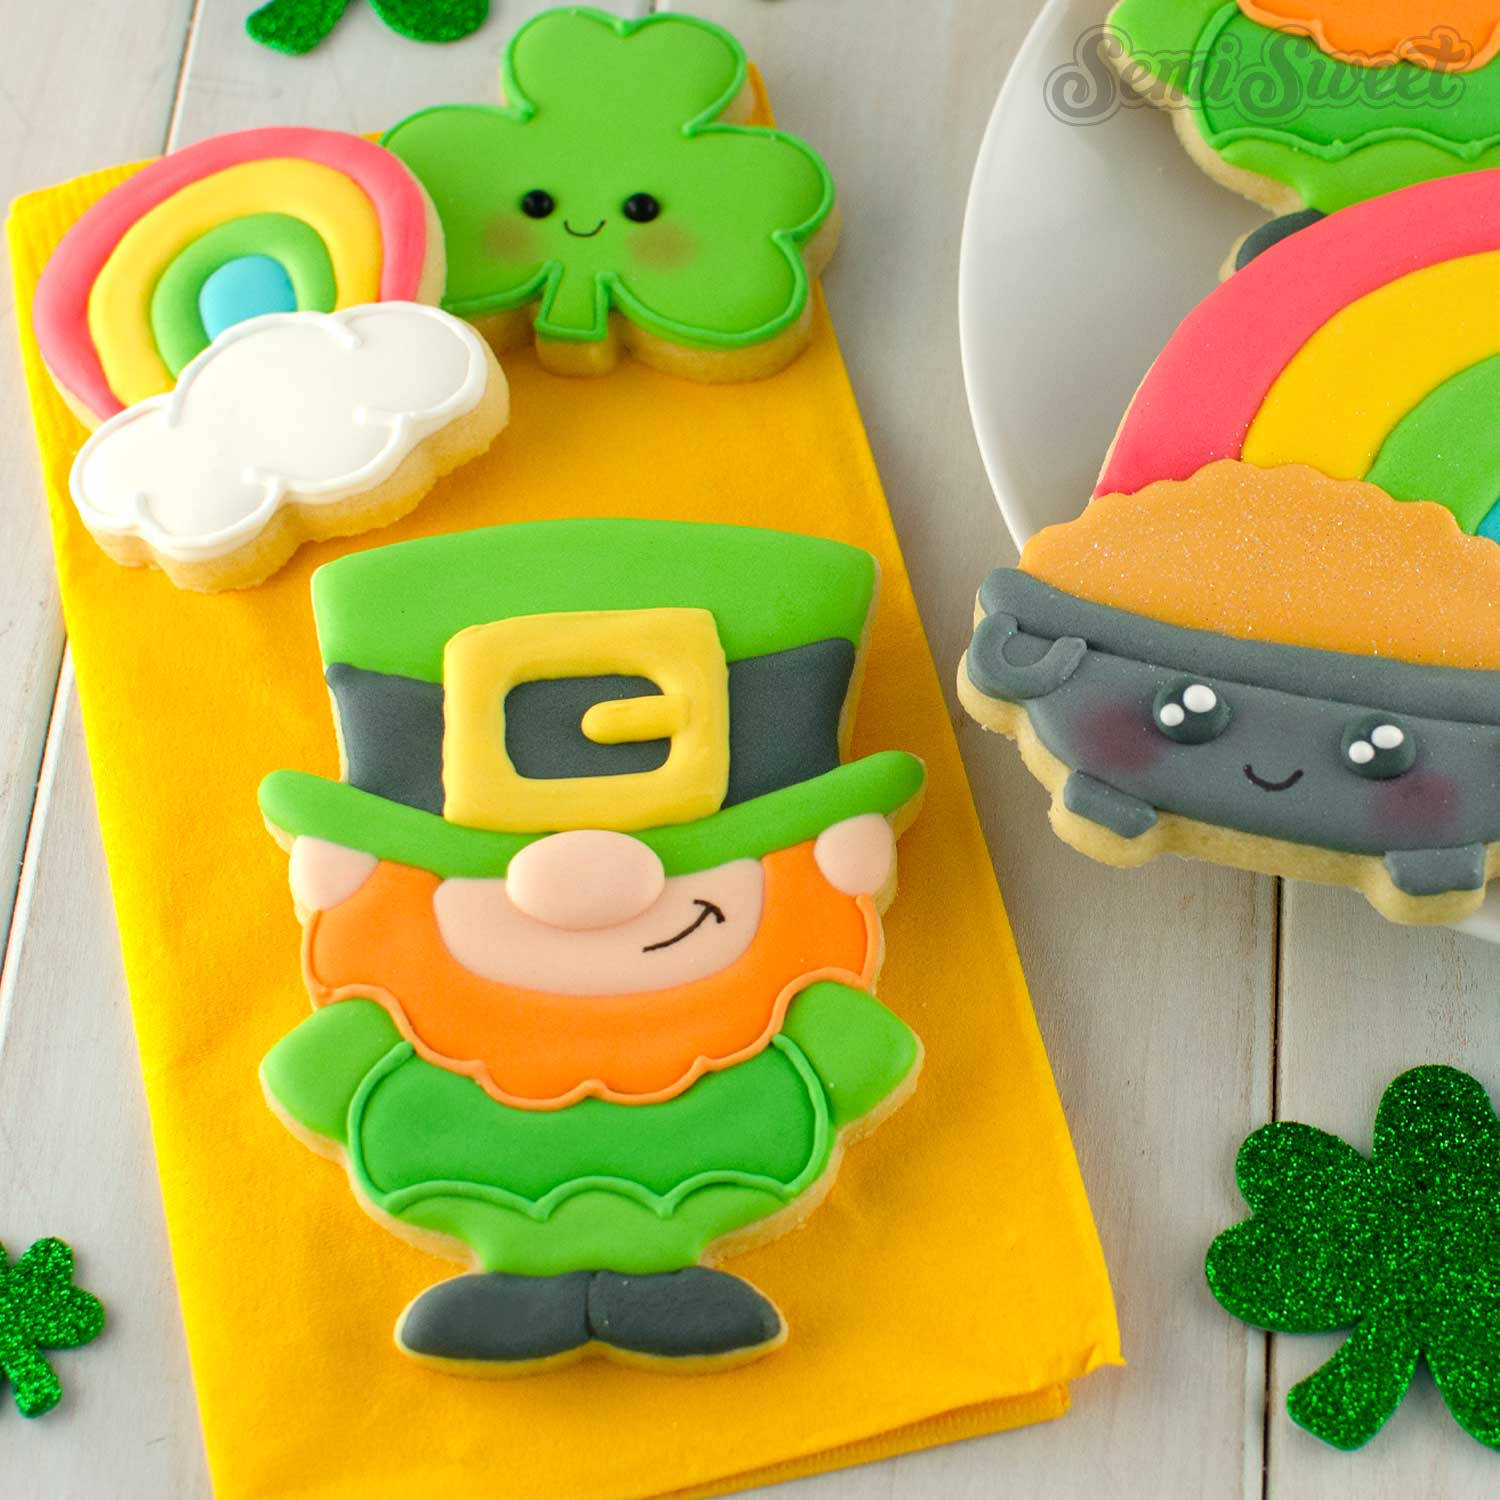 How to Make Leprechaun Cookies